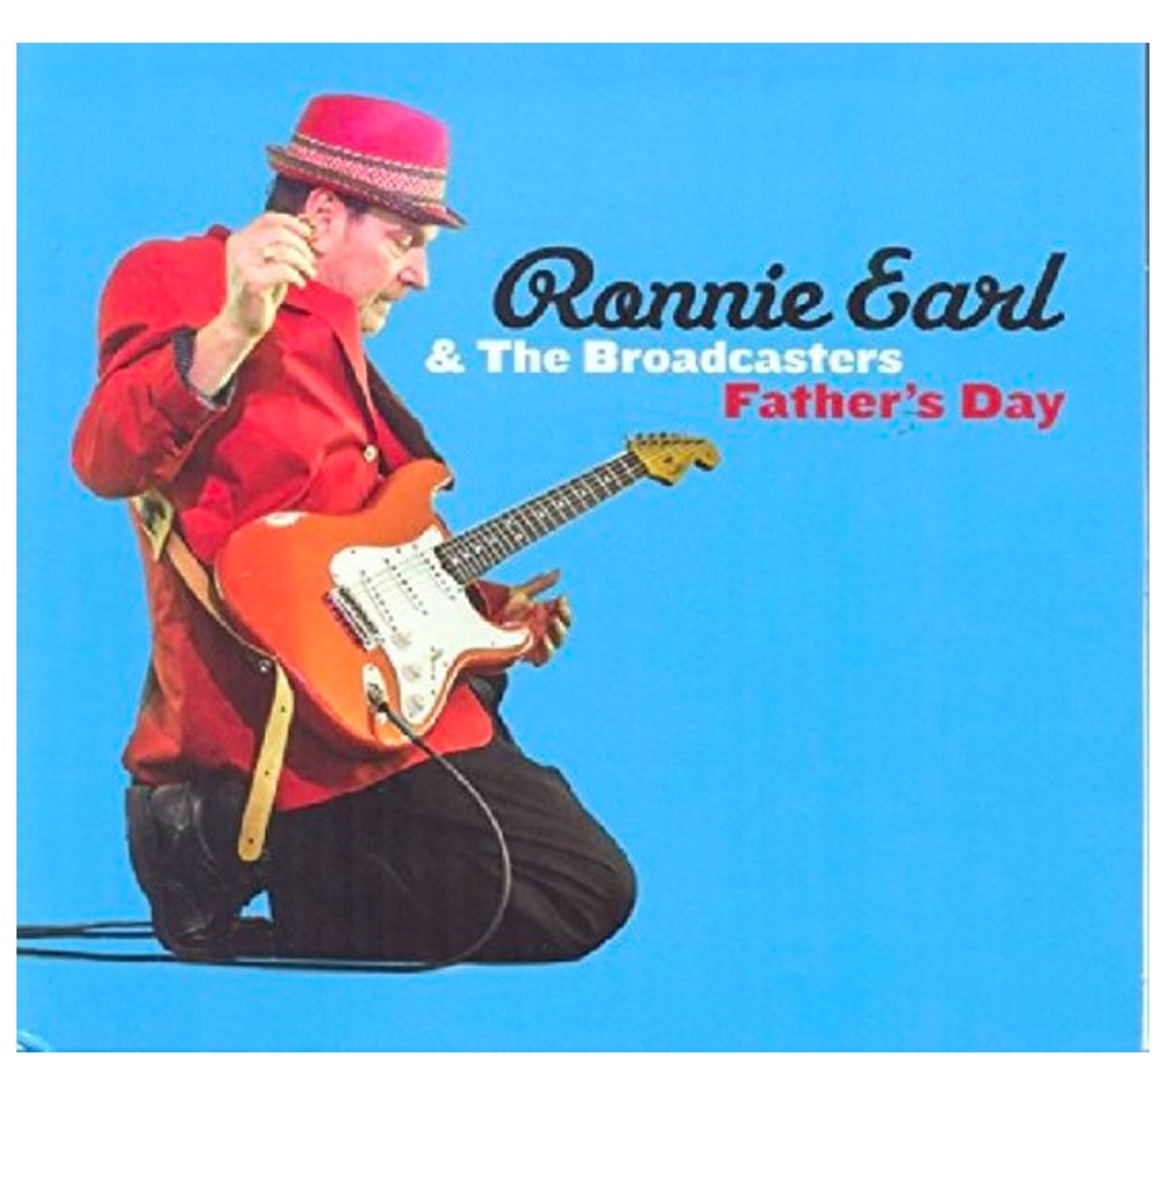 Ronnie Earl & The Broadcasters - Father's Day LP